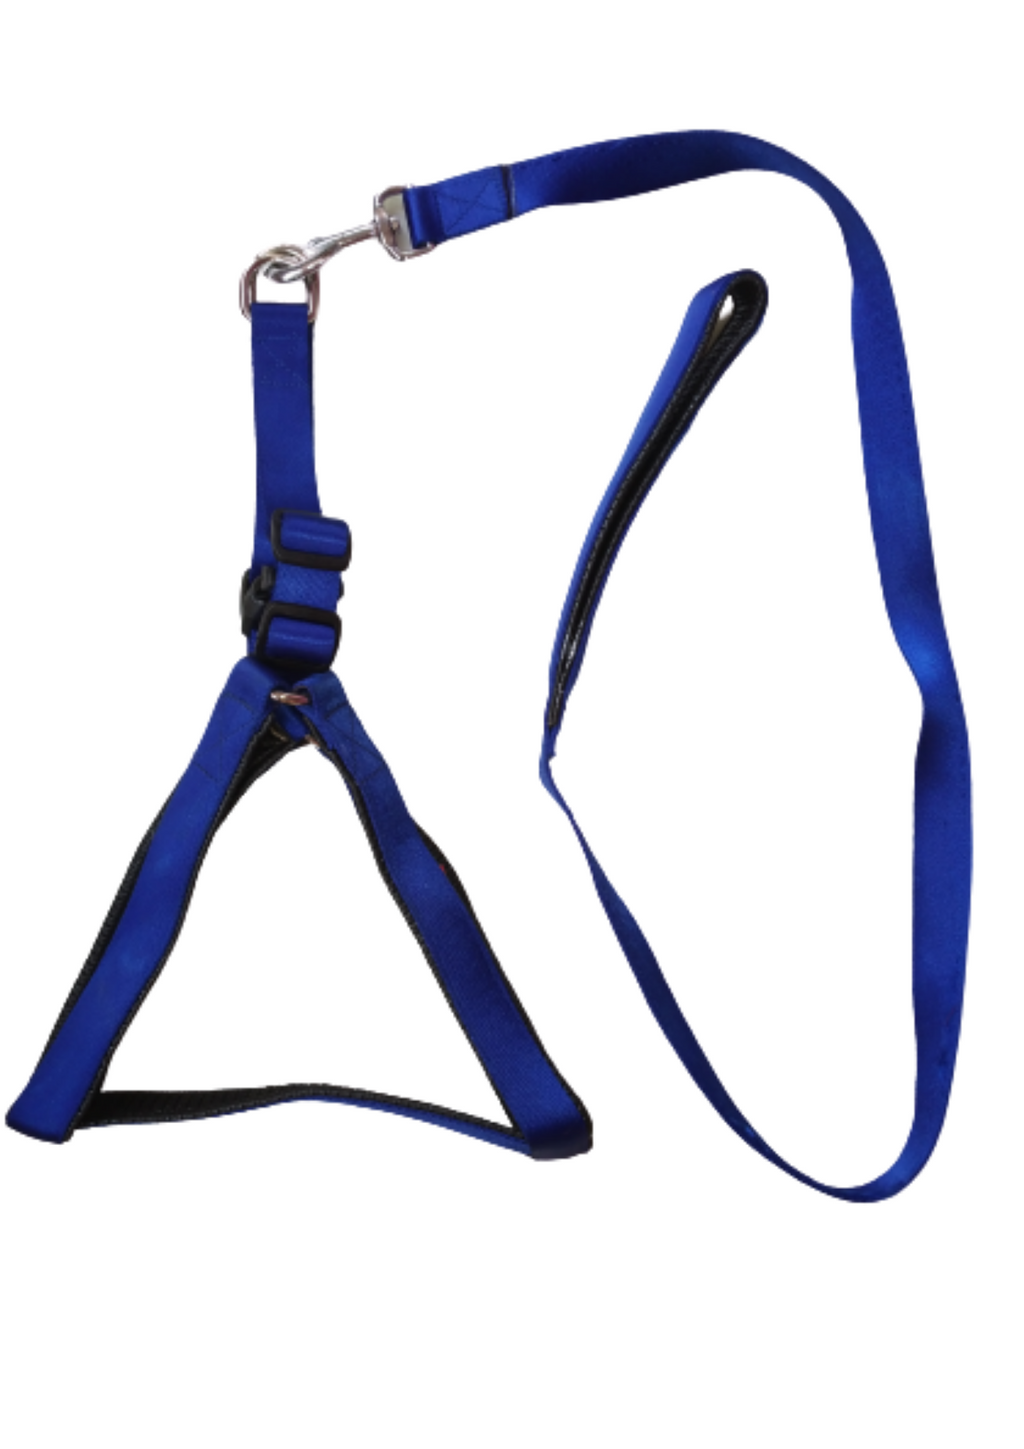 Nylon with Blue Padding Dog Harness Leash Set | Blue